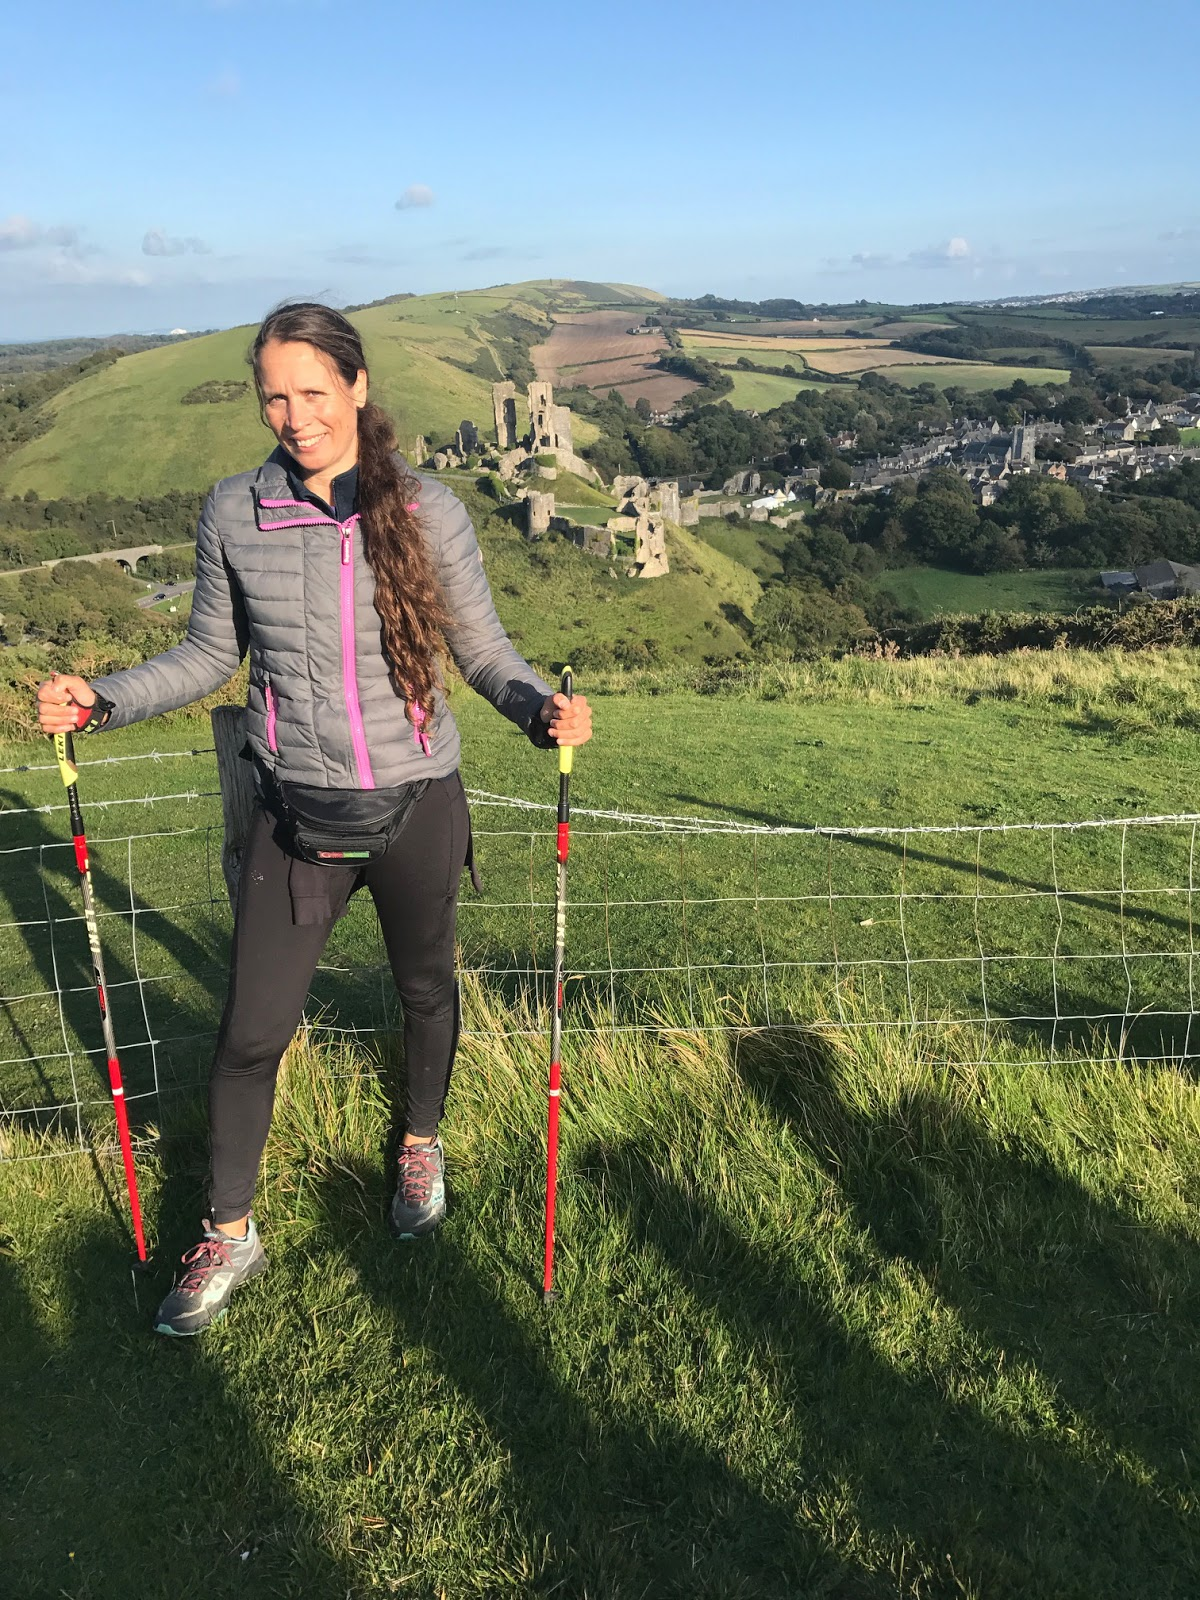 A Nordic Walker for eight years, Nikkii Barnett has noticed huge improvements in her fitness and attitude